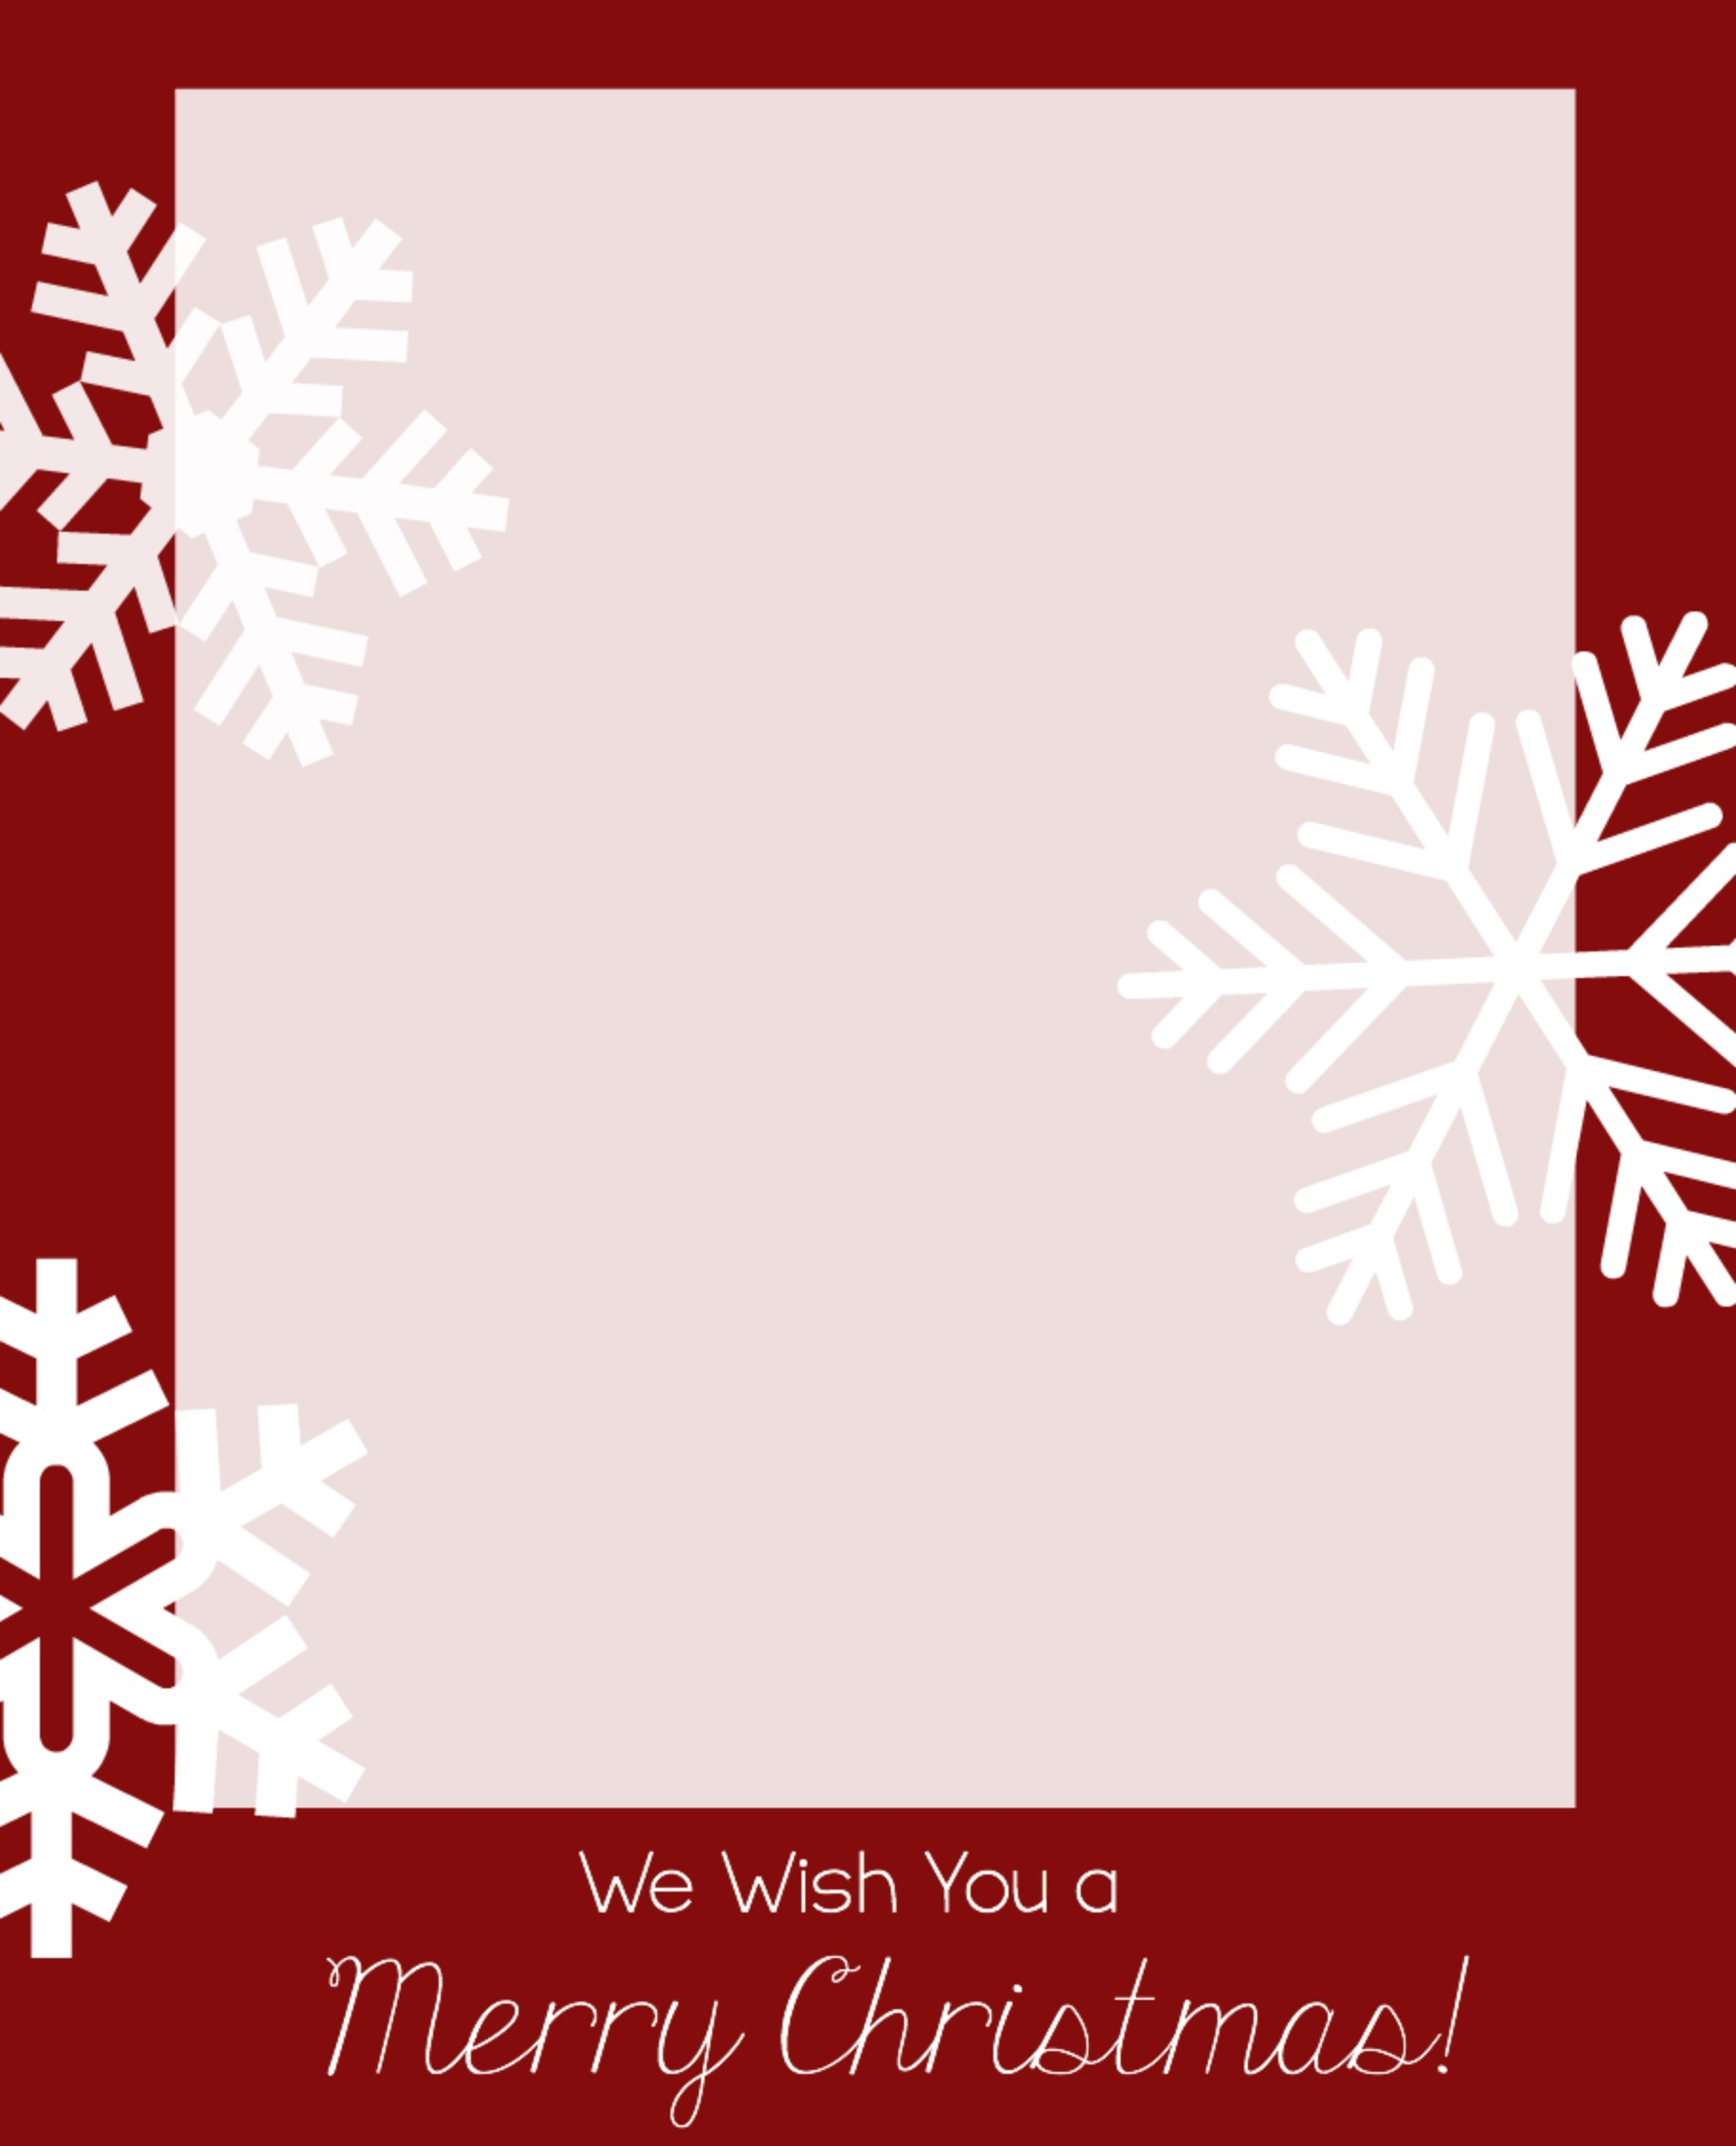 Free Christmas Card Templates - Crazy Little Projects - Christmas Cards Download Free Printable